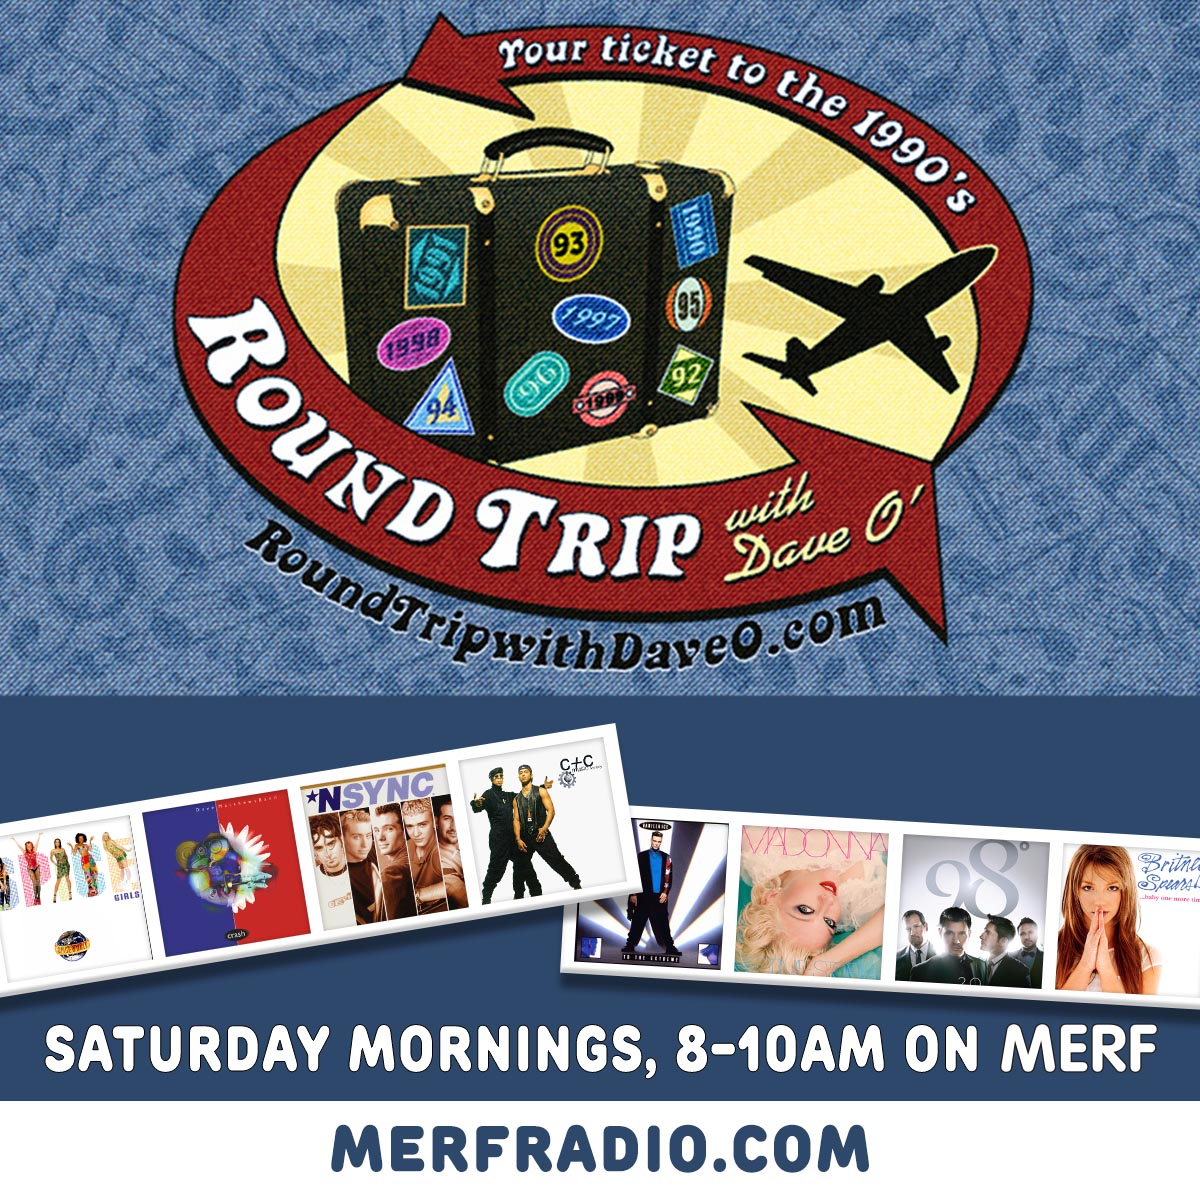 Two full hours of your fav 90's hits start NOW!  'NSYNC, Britney Spears, The Spice Girls and much more too.  Join Dave O' for Round Trip on Merf Radio, 95.7FM and streaming at !